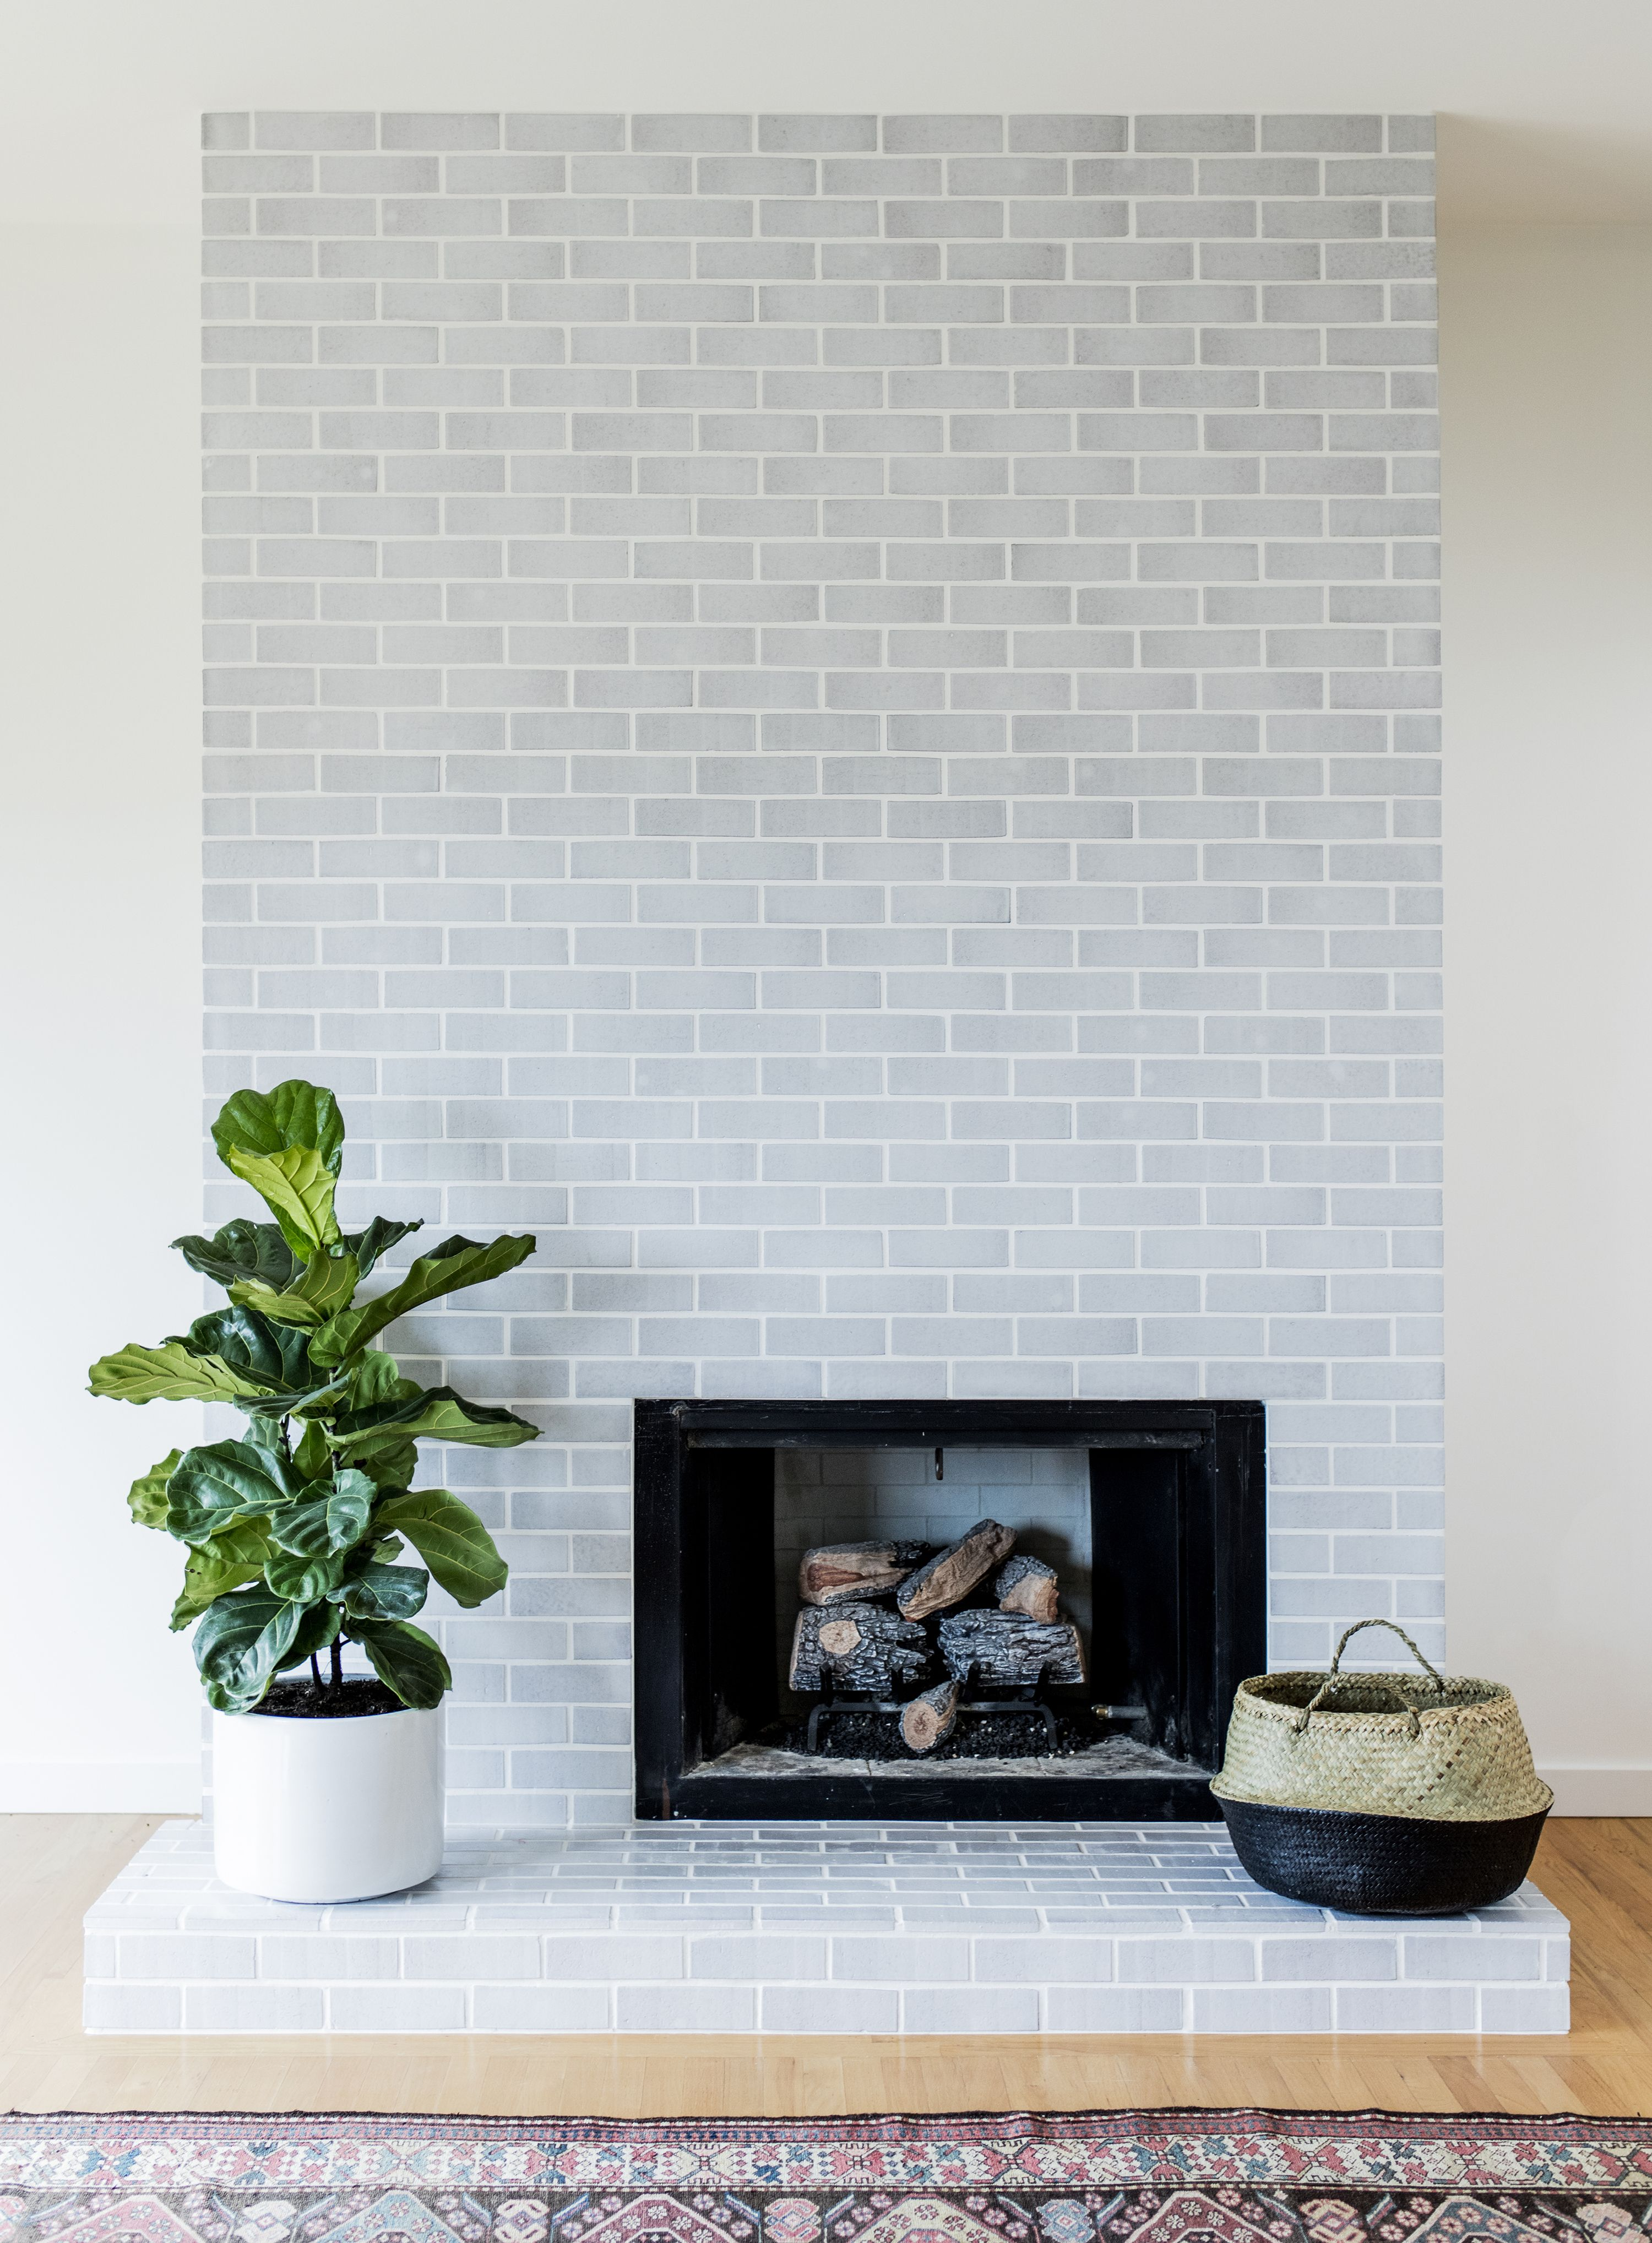 3 Ideas For Fireplace Tiles Fireclay Tile Fireplace Tile Glazed Brick Fireplace Tile Surround